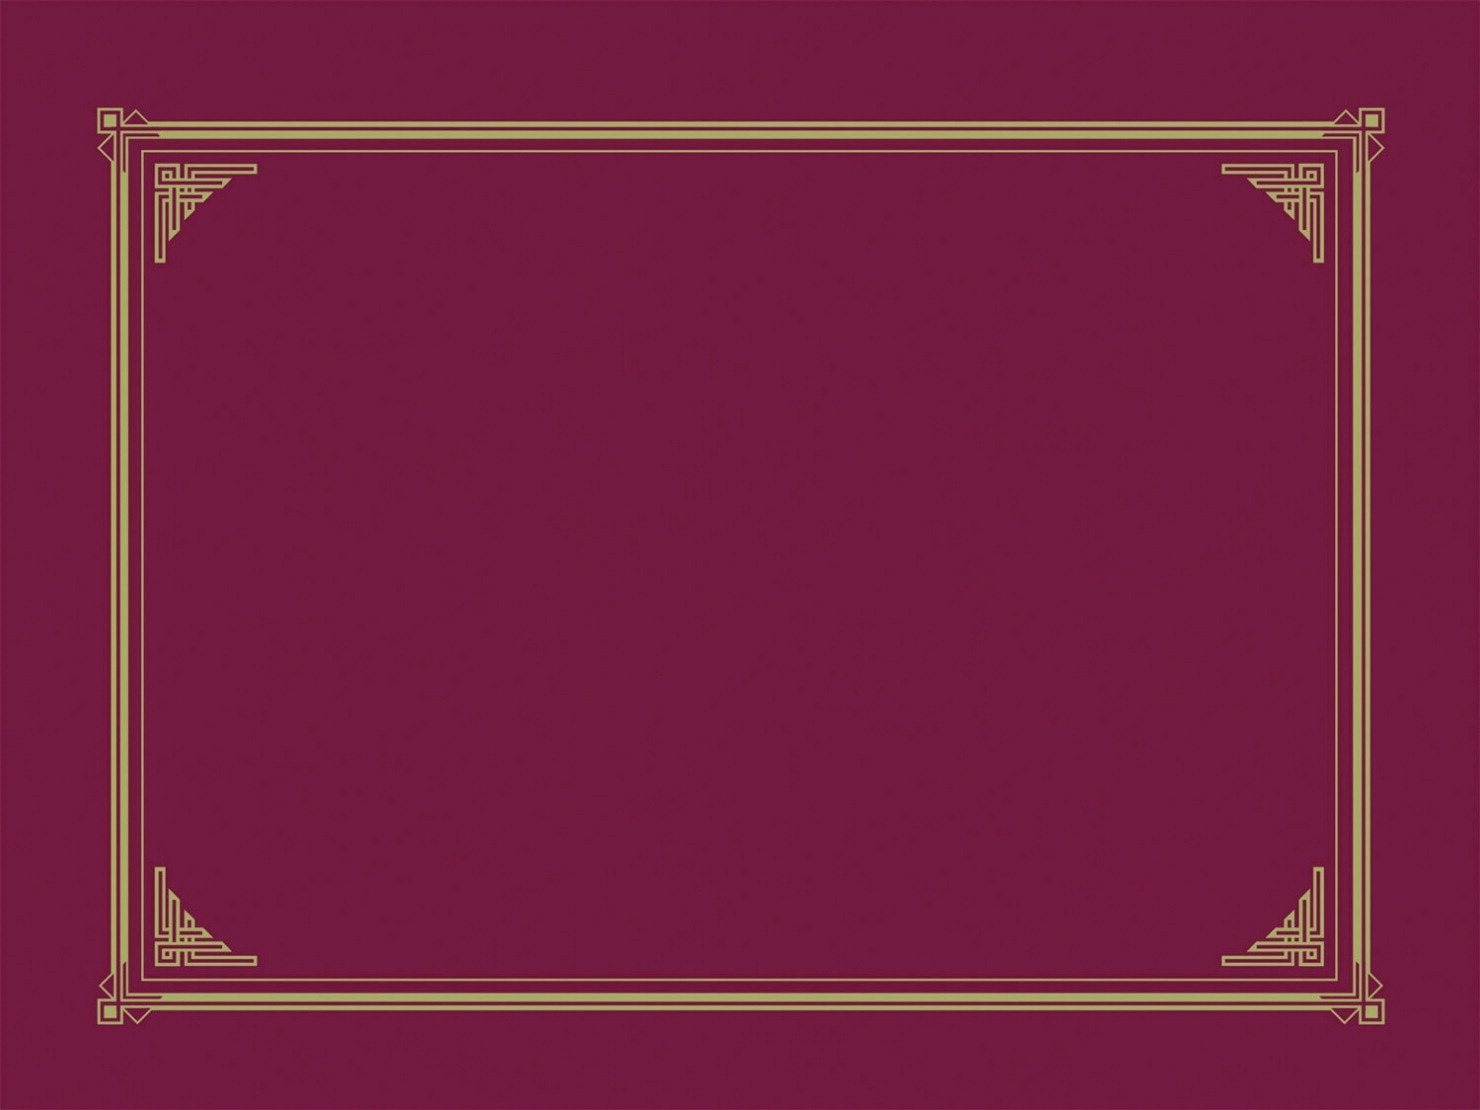 Learning: Supplies Teacher Helpers Awards & Incentives Trophies Awards & Medals - 1441619 - Geographics Linen Texture Document Cover; Burgundy; Pack Of 6 1441619